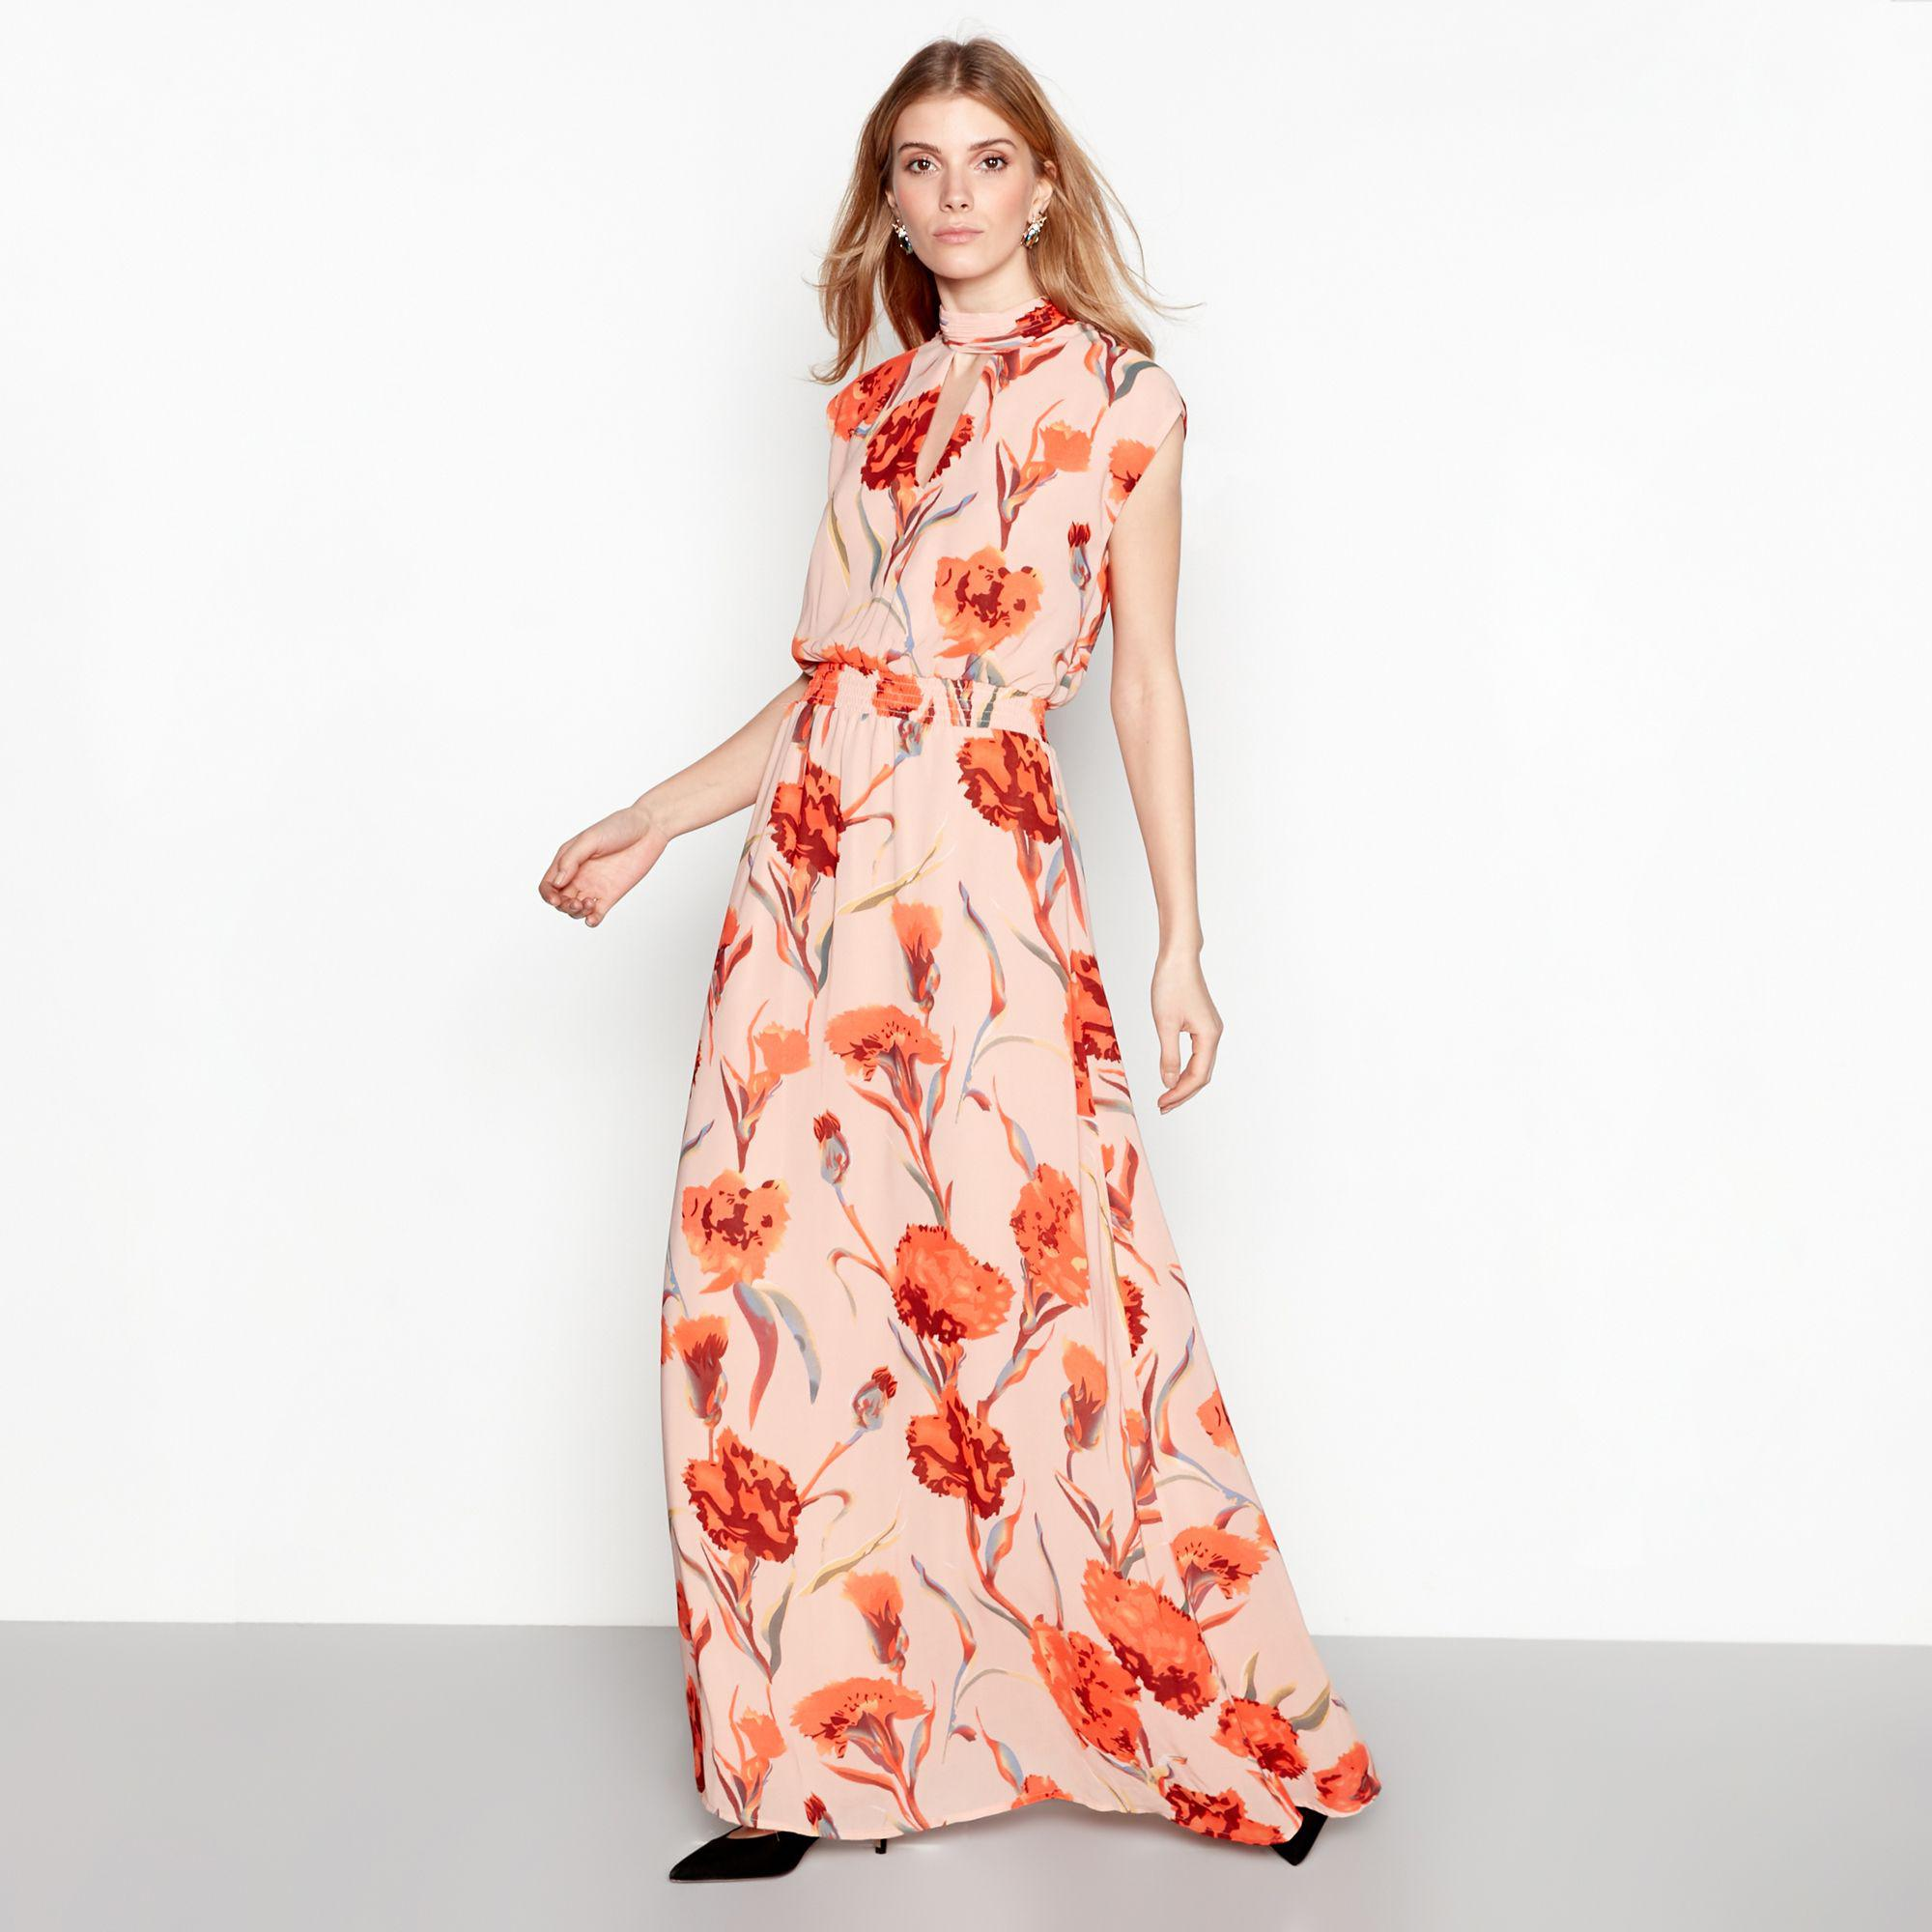 50a1b2c446 Y.A.S Rose Floral Print Sleeveless High Neck Maxi Dress in Pink - Lyst